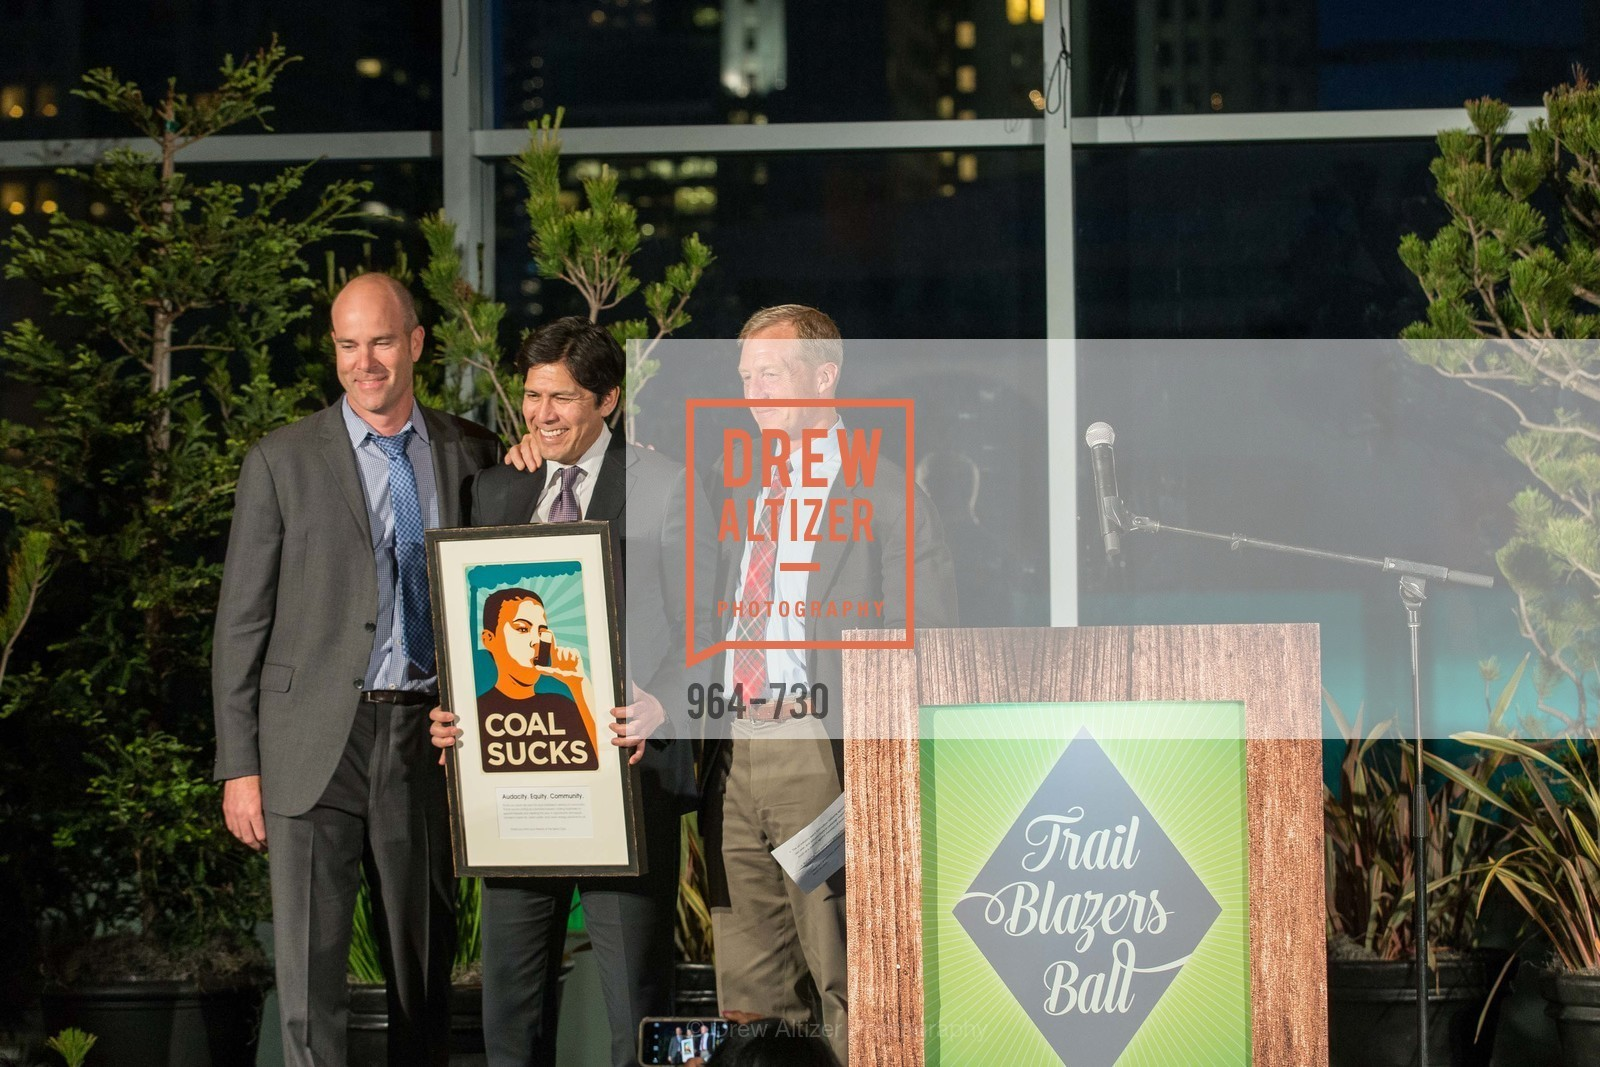 Michael Brune, State Senator Kevin DeLeon, Tom Steyer, 2015 SIERRA CLUB Trail Blazers Ball, US, May 16th, 2015,Drew Altizer, Drew Altizer Photography, full-service agency, private events, San Francisco photographer, photographer california